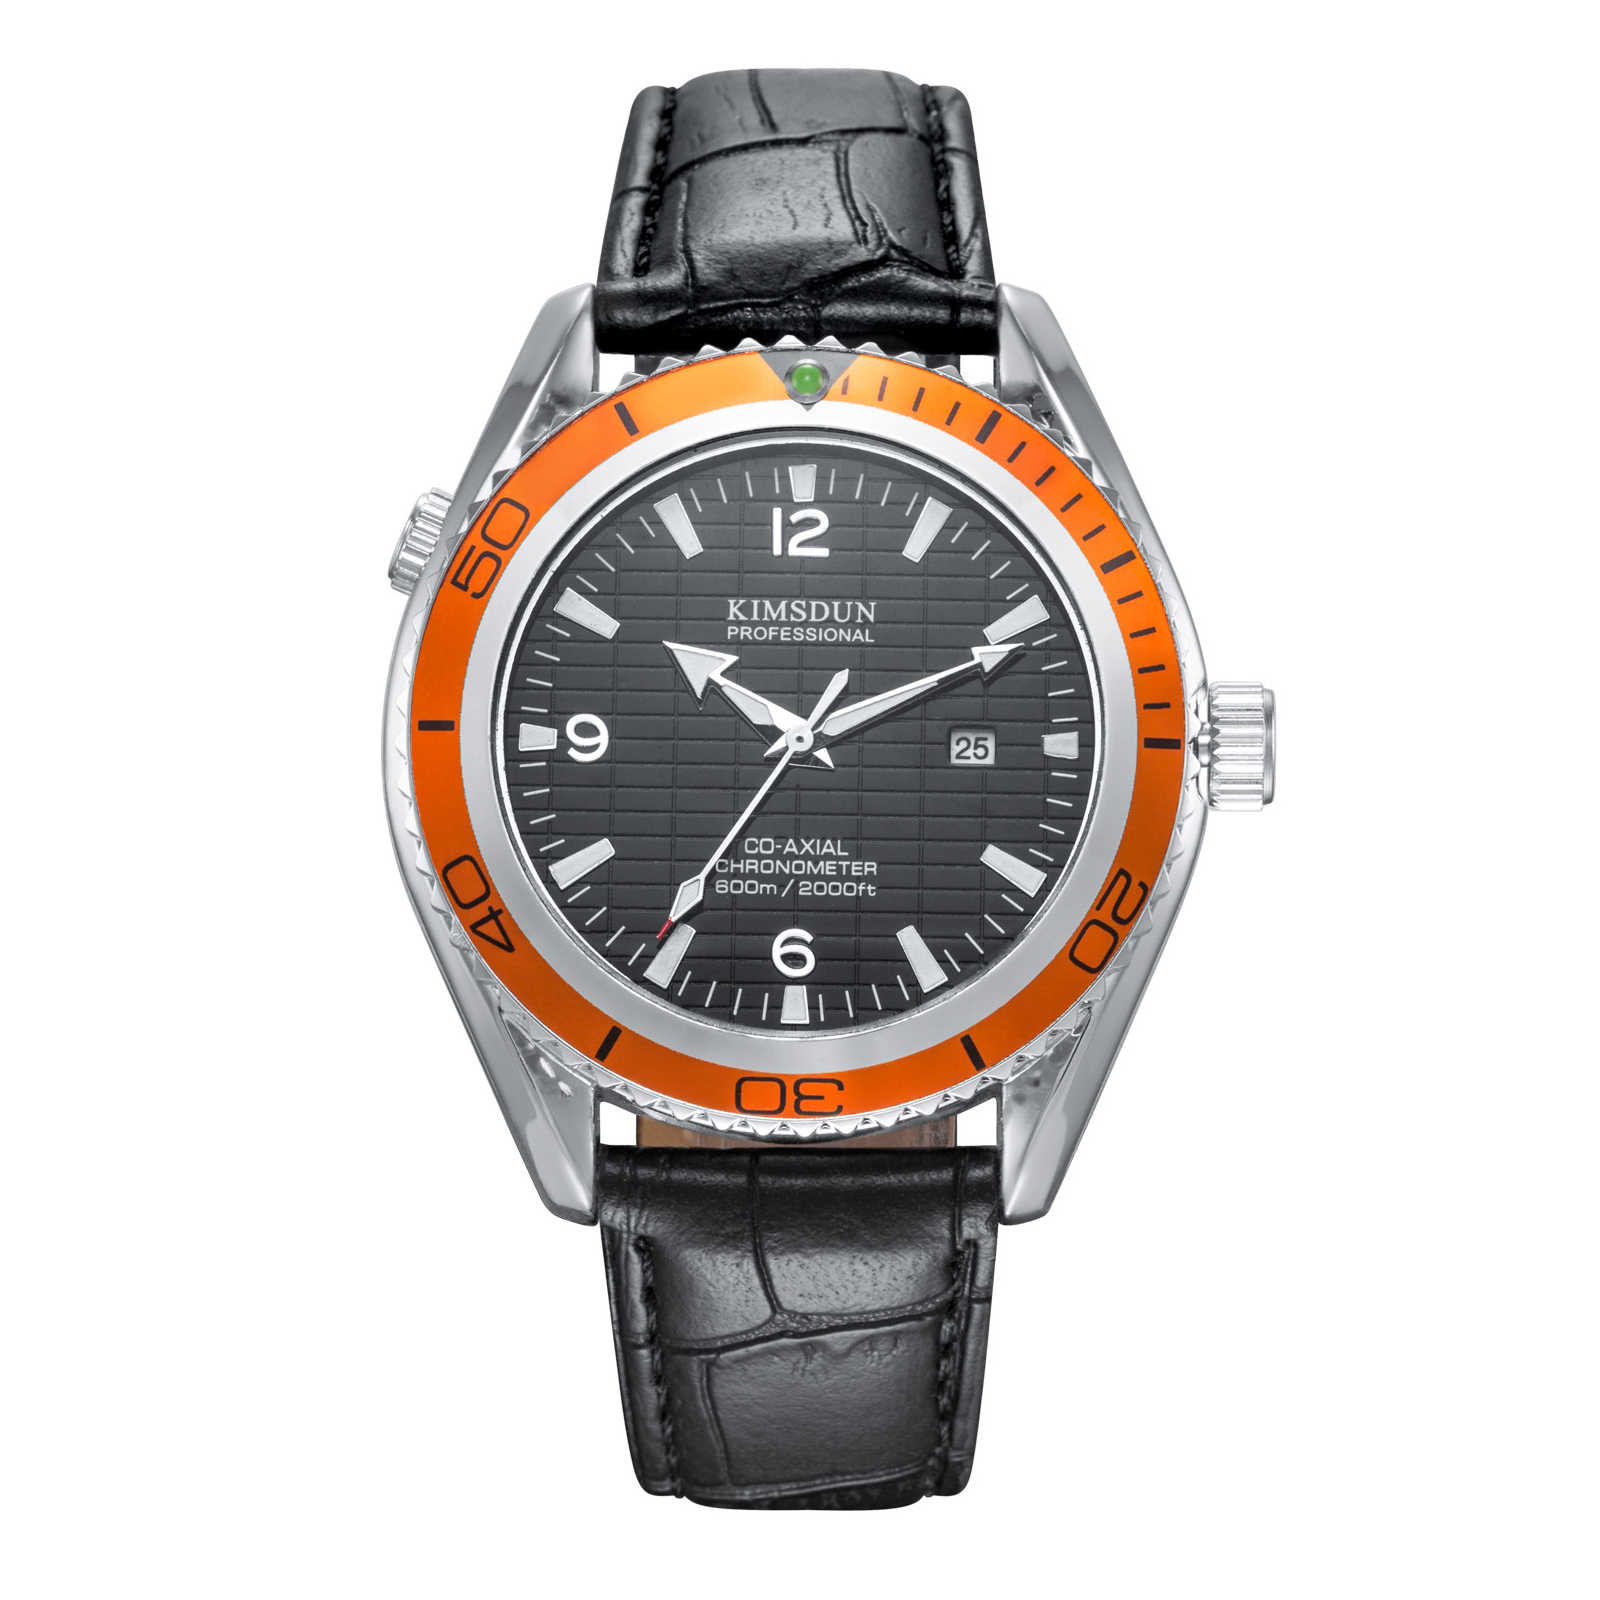 Switzerland watches men luxury brand professional sea diver watch classic dress male luminous waterproof quartz Orange bezel